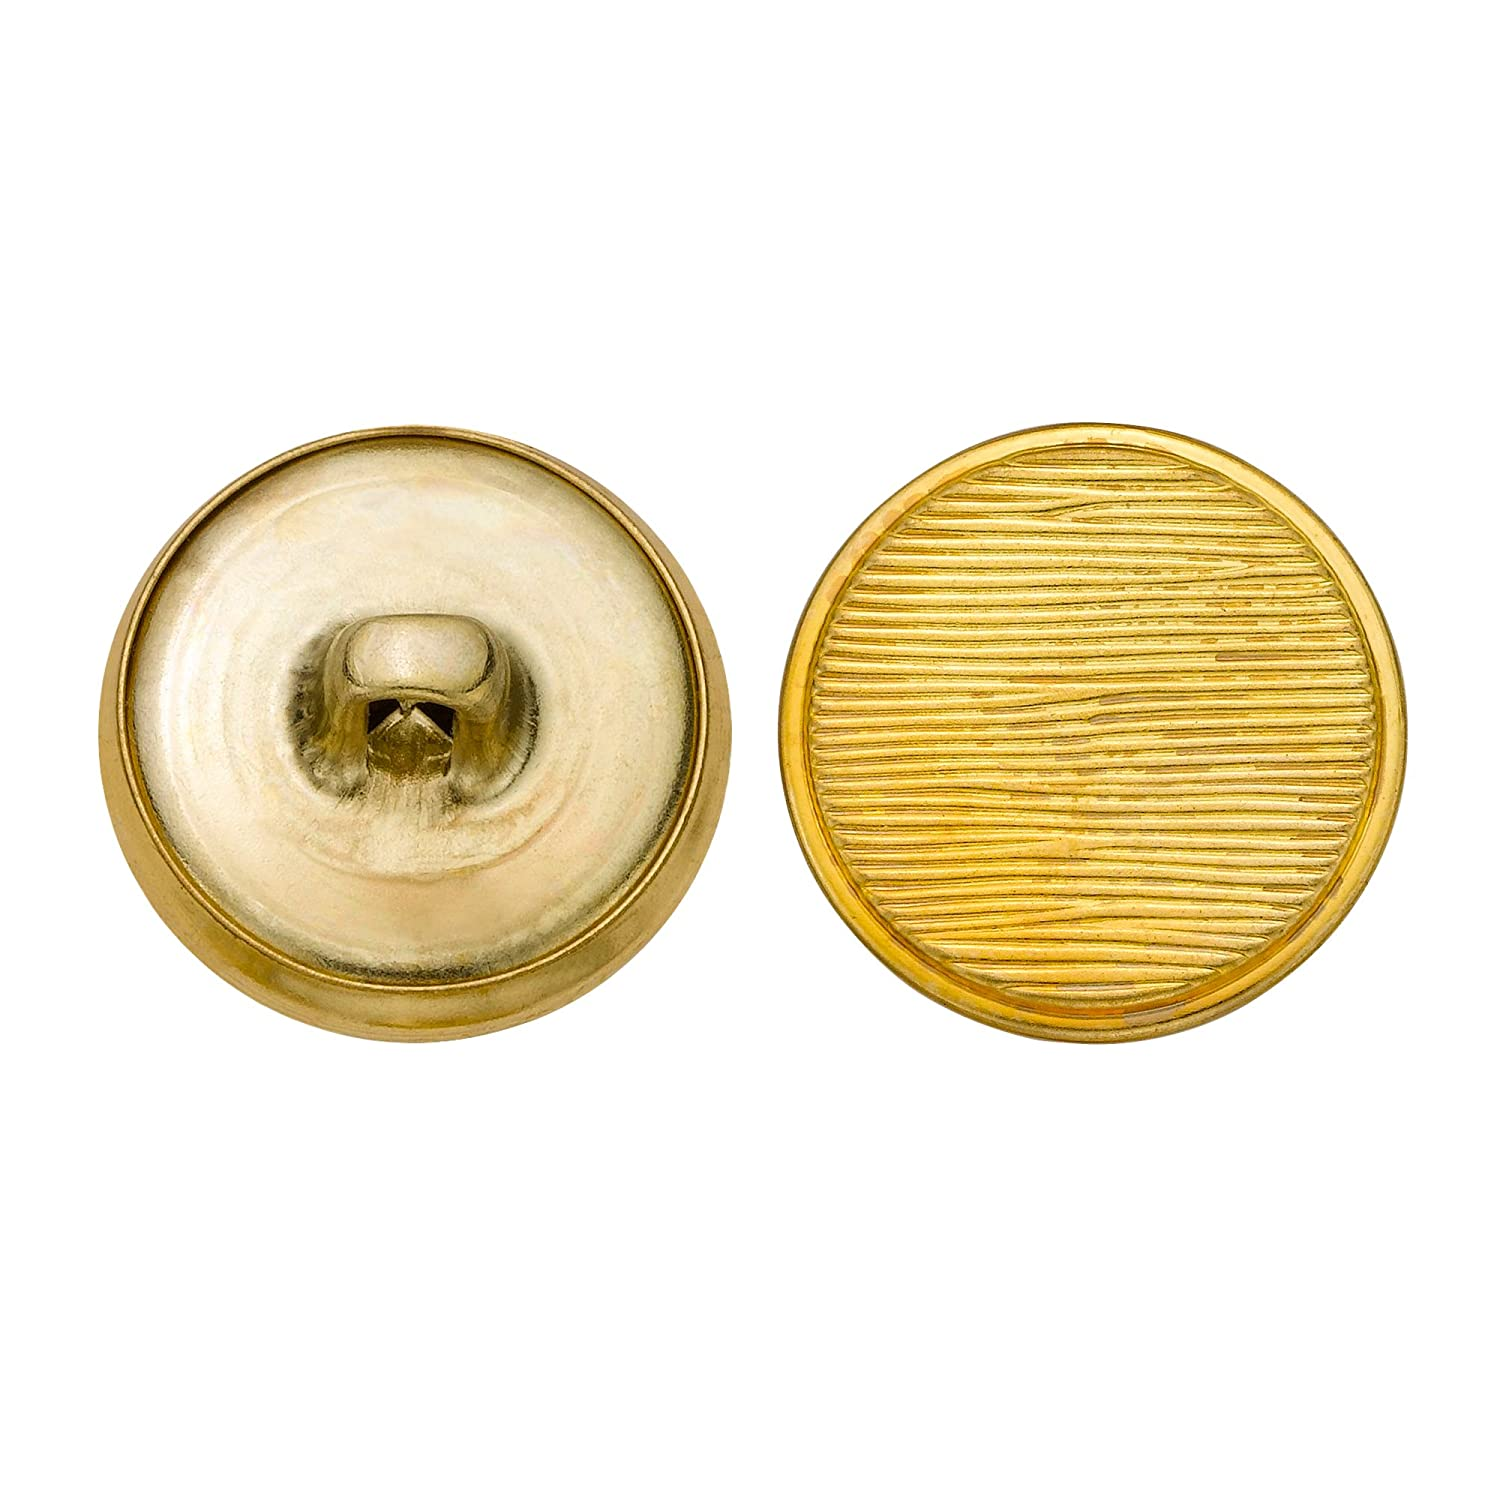 C/&C Metal Products 5152 Lined Livery Metal Button Size 30 Ligne 36-Pack C/&C Metal Products Corp Gold